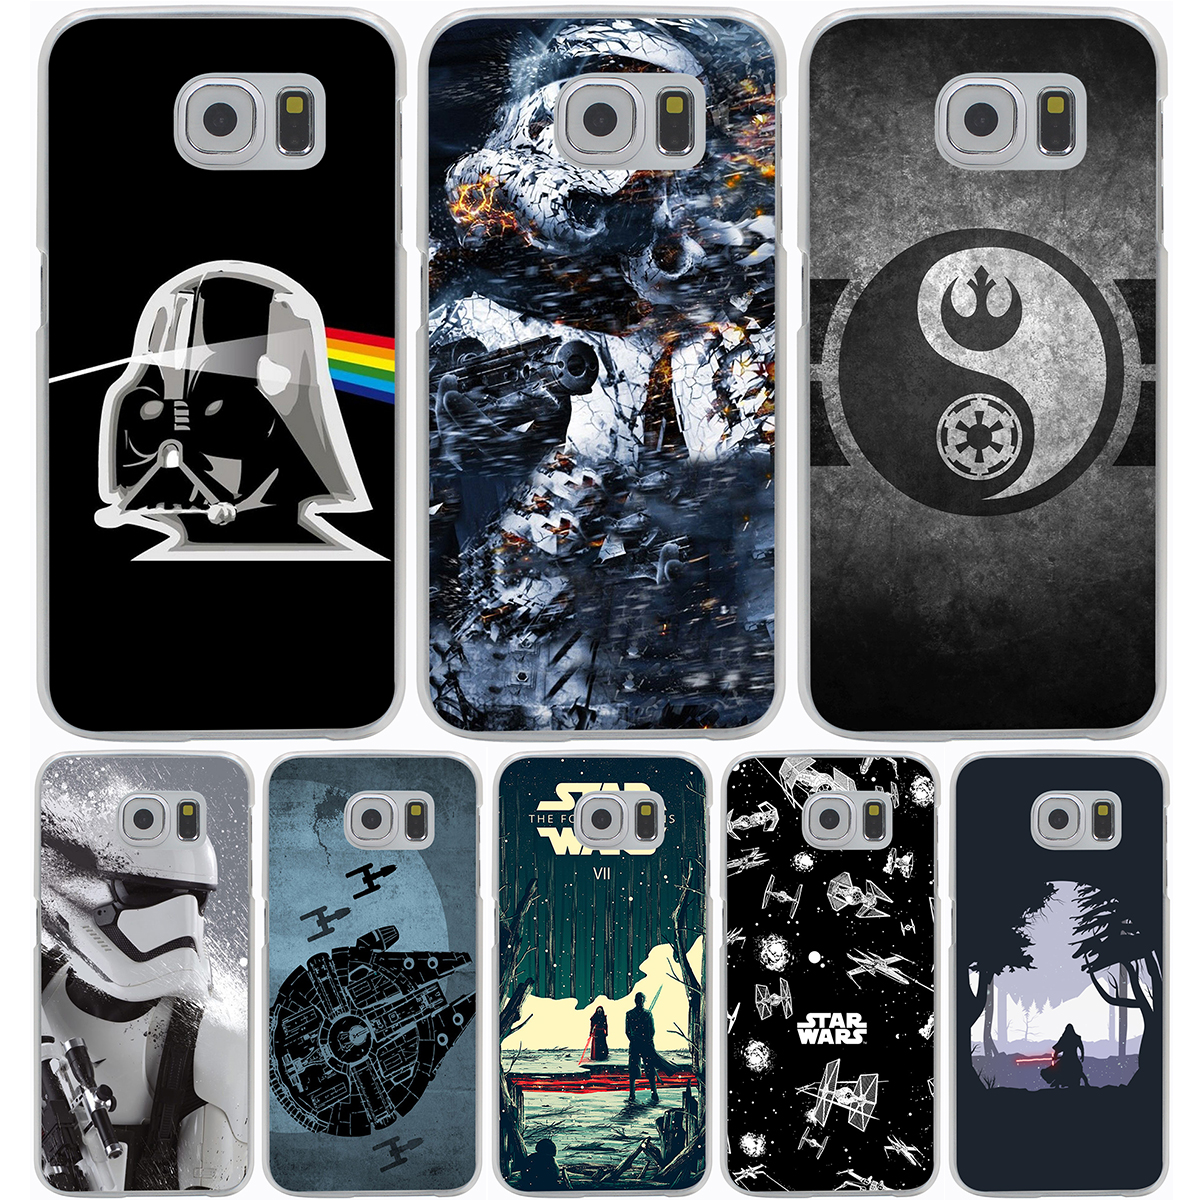 incredible star wars 39 phone covers cases for galaxy s7. Black Bedroom Furniture Sets. Home Design Ideas